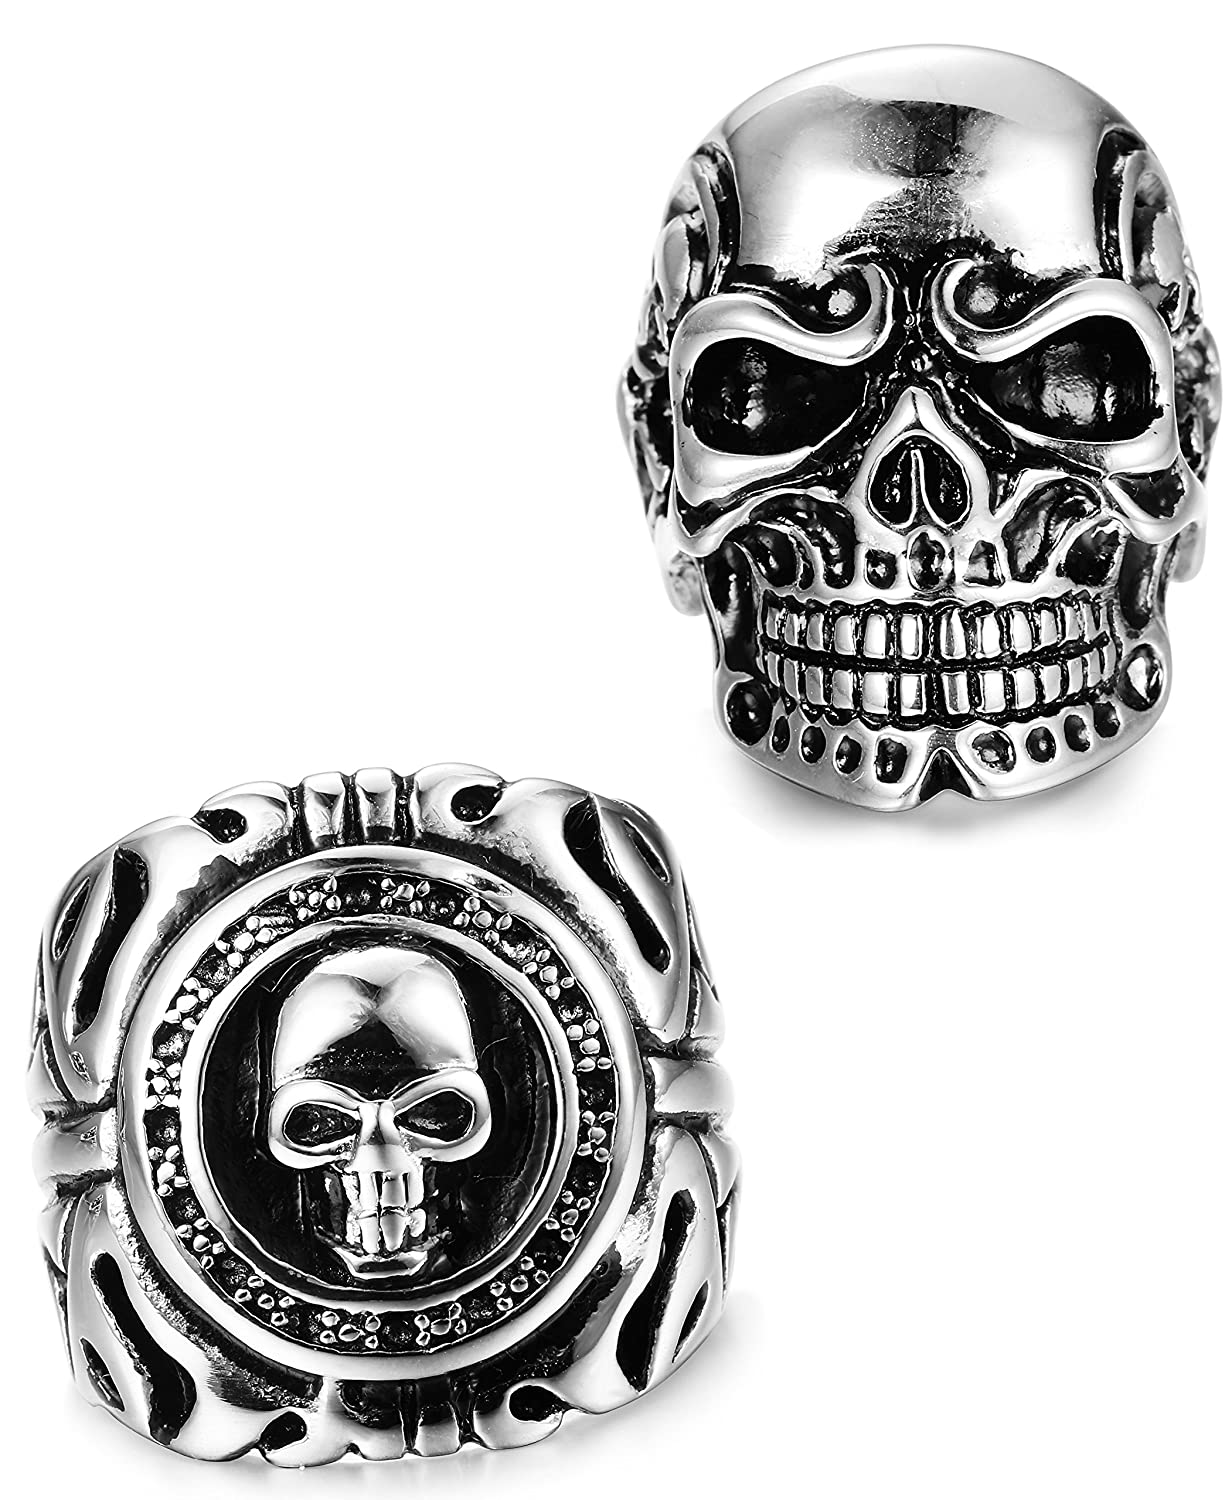 FUNRUN JEWELRY 2 PCS Stainless Steel Ring Men Teens Skull Biker Ring